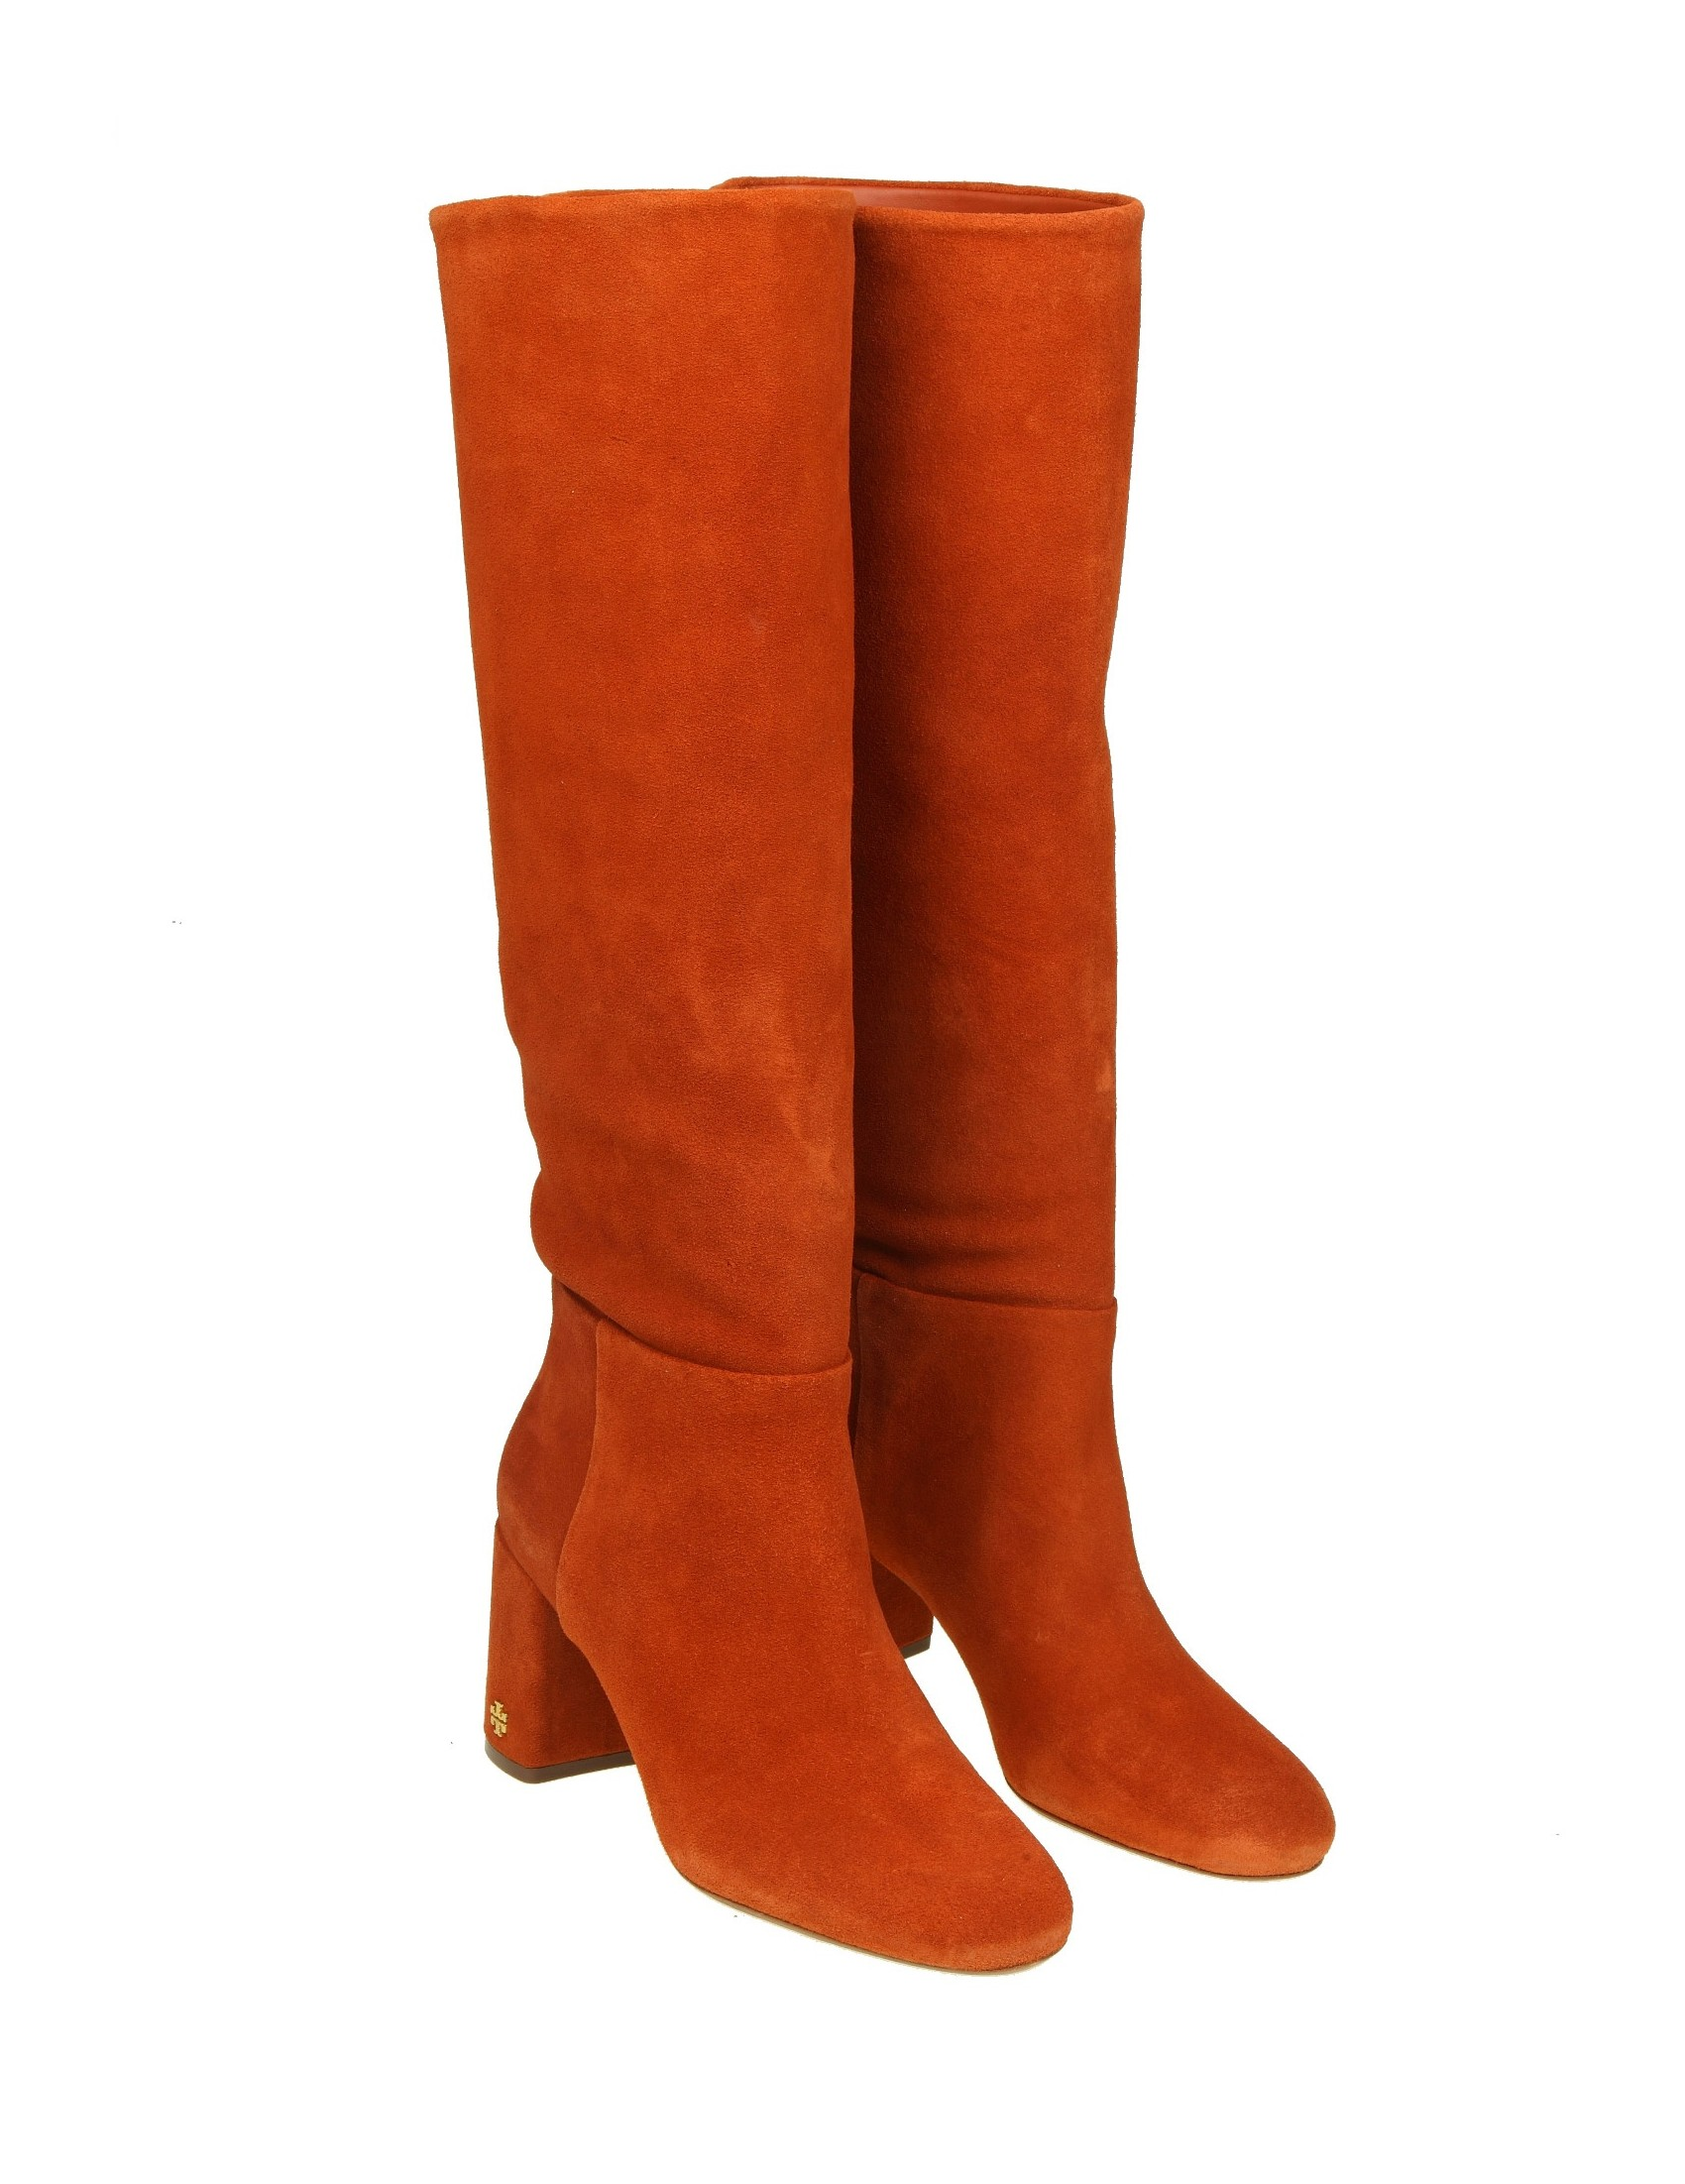 26b2e997018 Tory Burch Red Boots - Best Picture Of Boot Imageco.Org